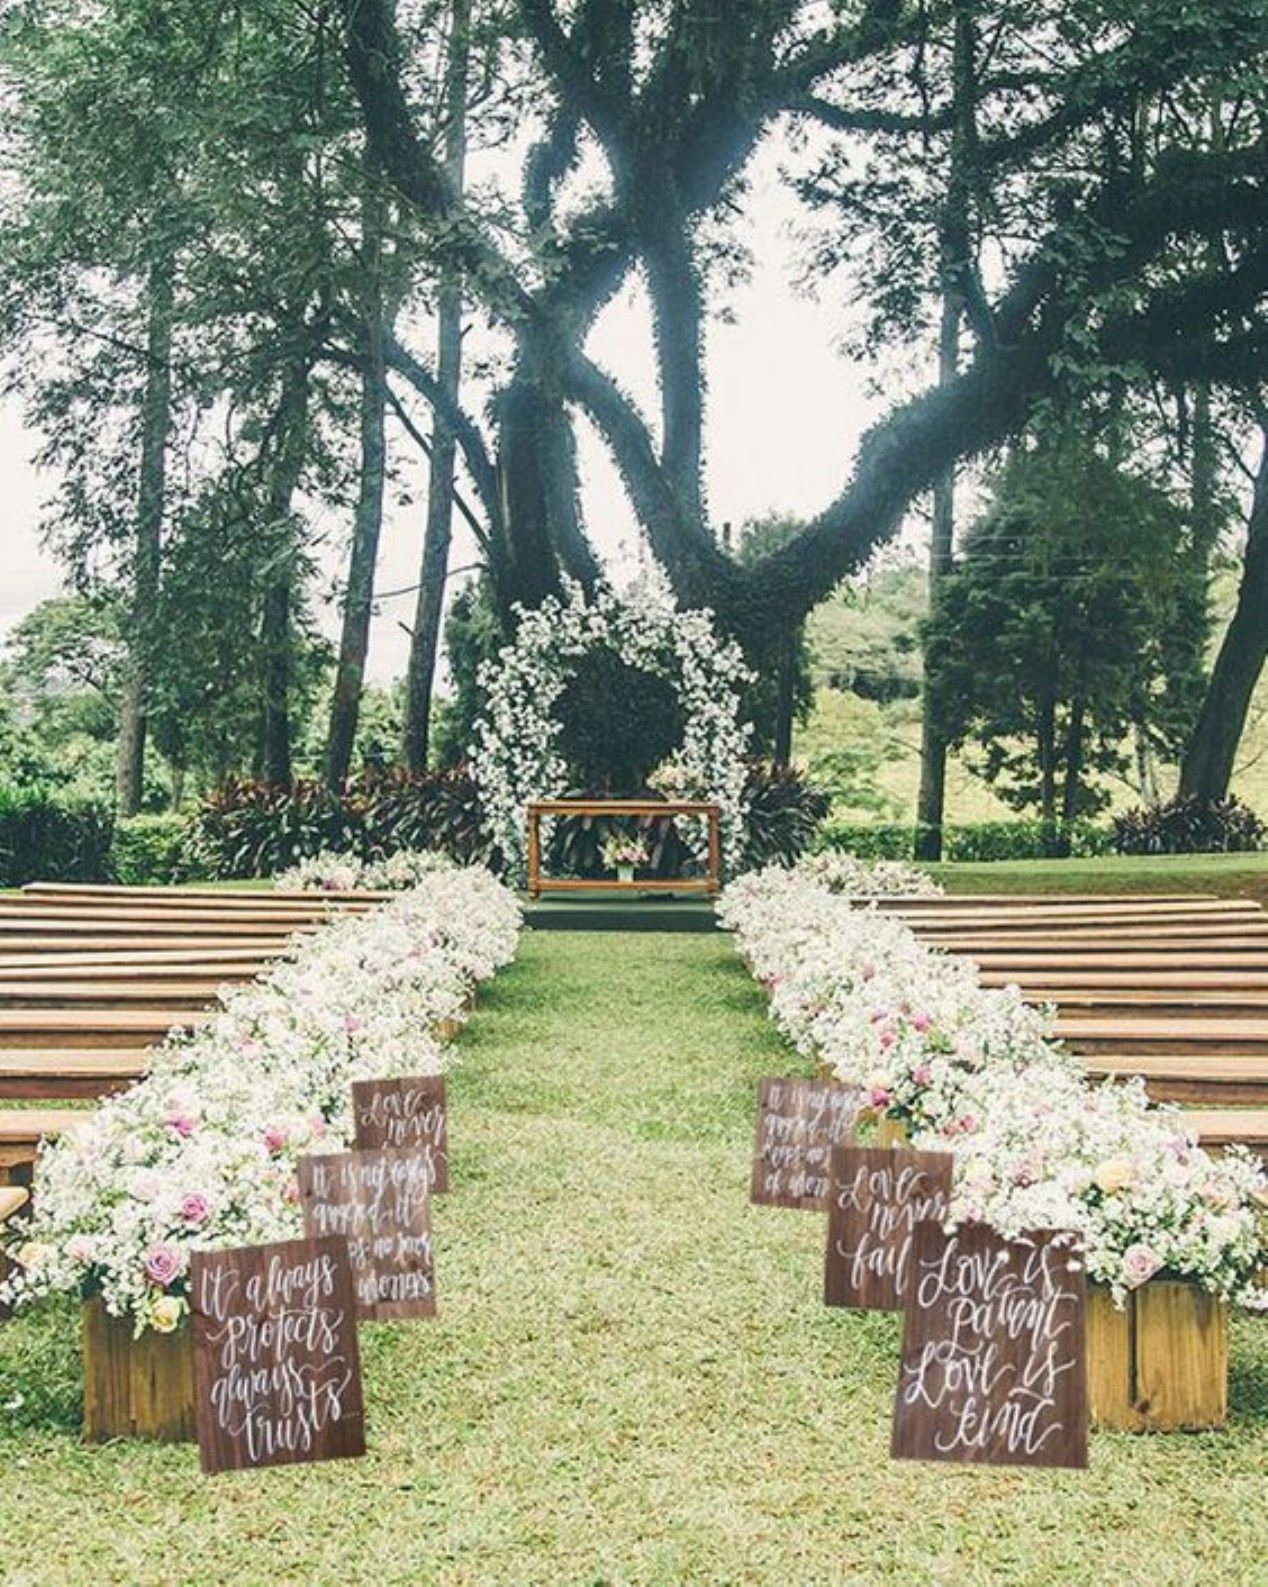 33 great outdoor wedding decoration ideas wedding pinterest nice 33 great outdoor wedding decoration ideas httpsviscawedding2017042333 great outdoor wedding decoration ideas junglespirit Image collections